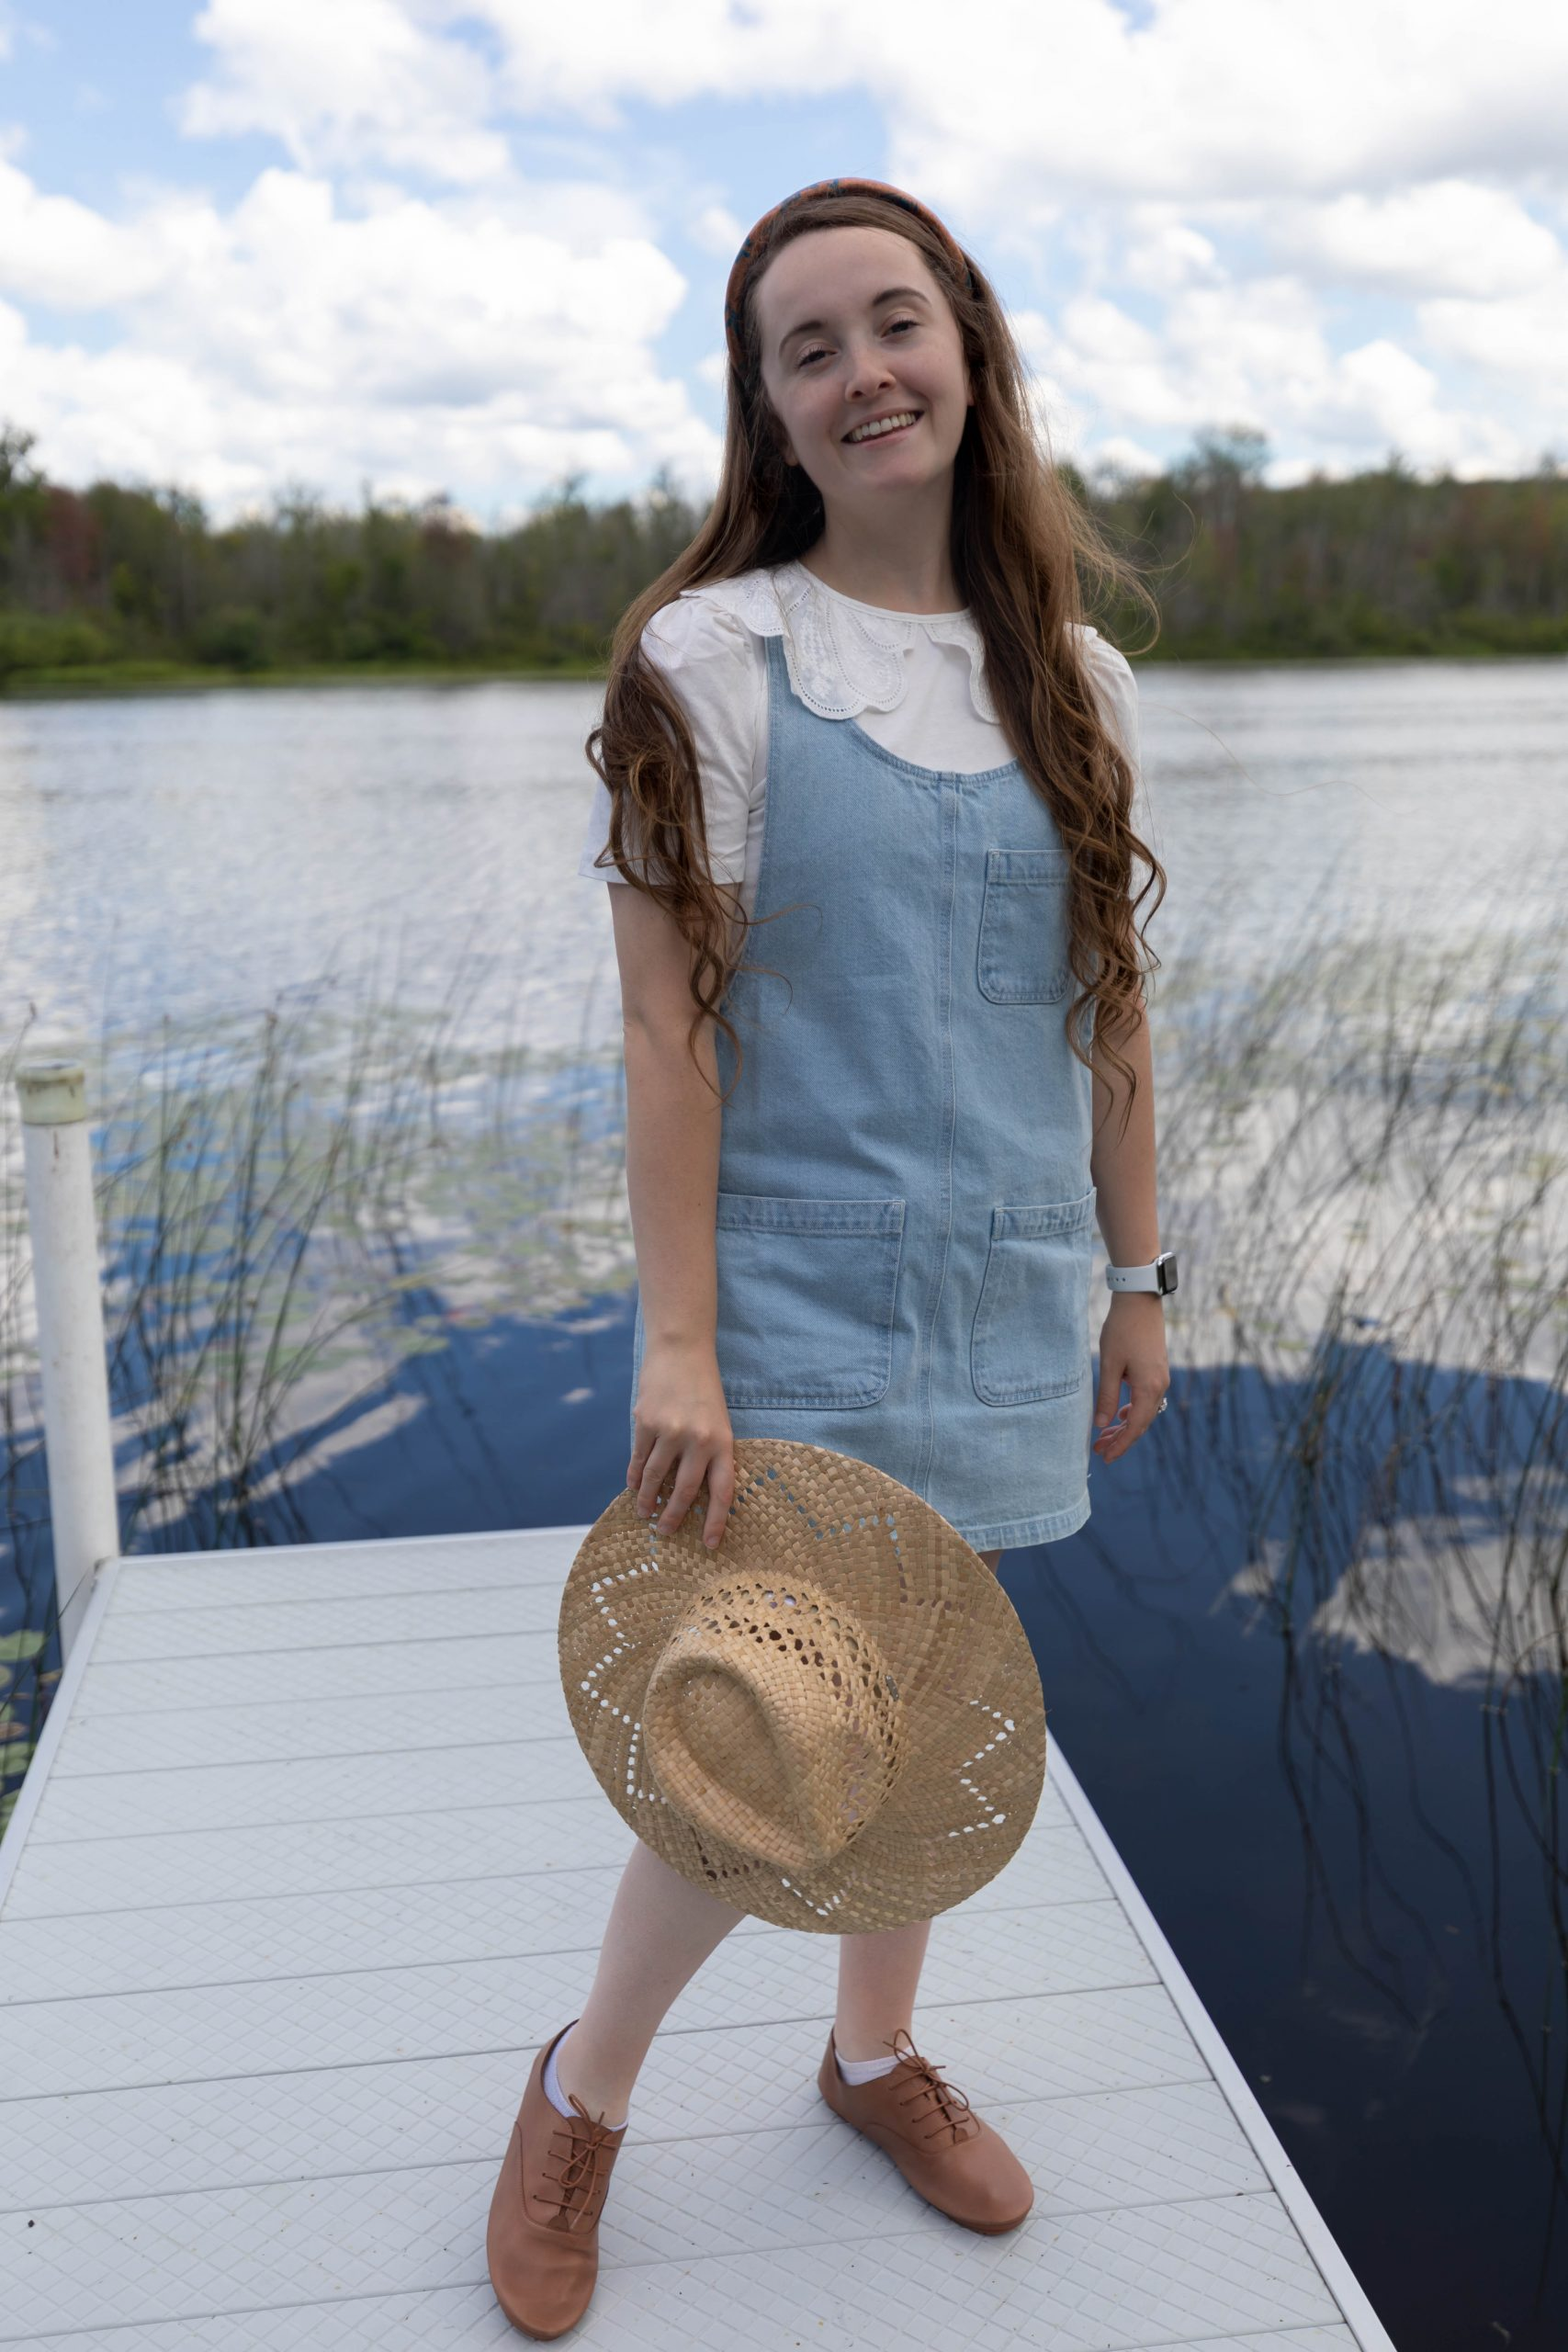 Denim Overall Dress from Reclaimed Vintage and Wide Embroidered Collar with Anothersole Shoes for Charity Casual Outfit Style by Annie Fairfax